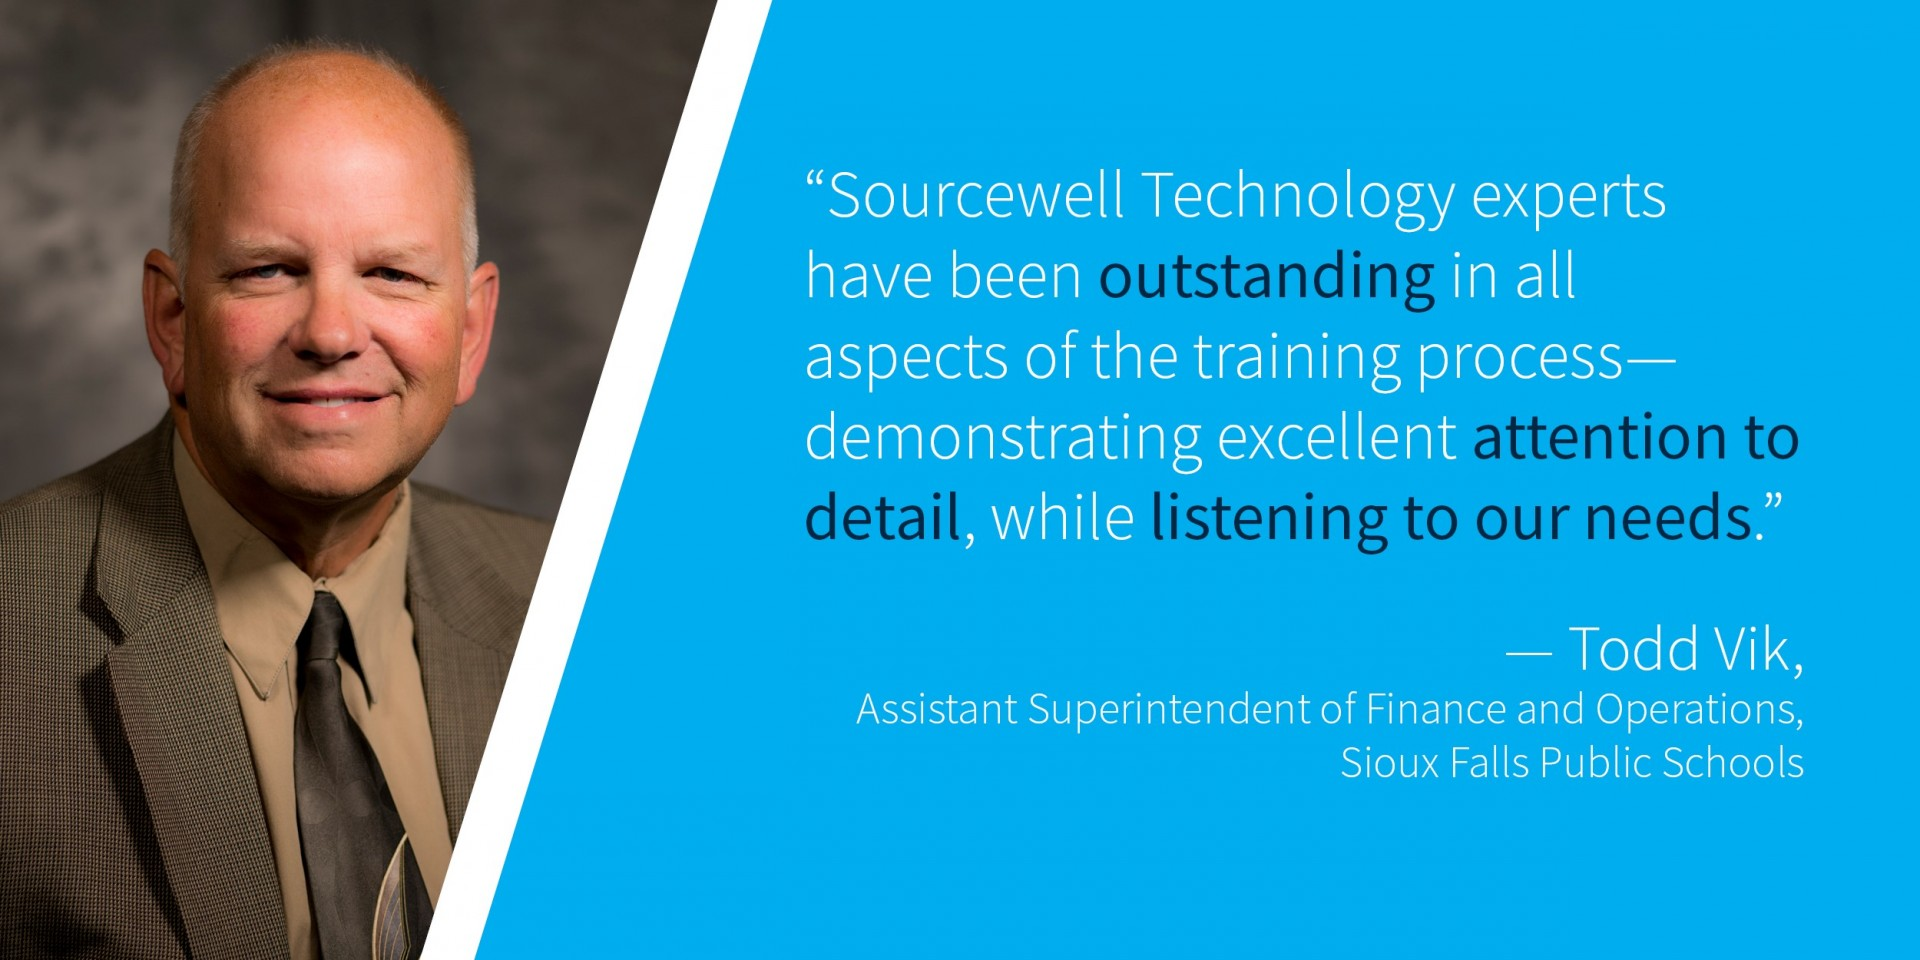 Sourcewell Technology